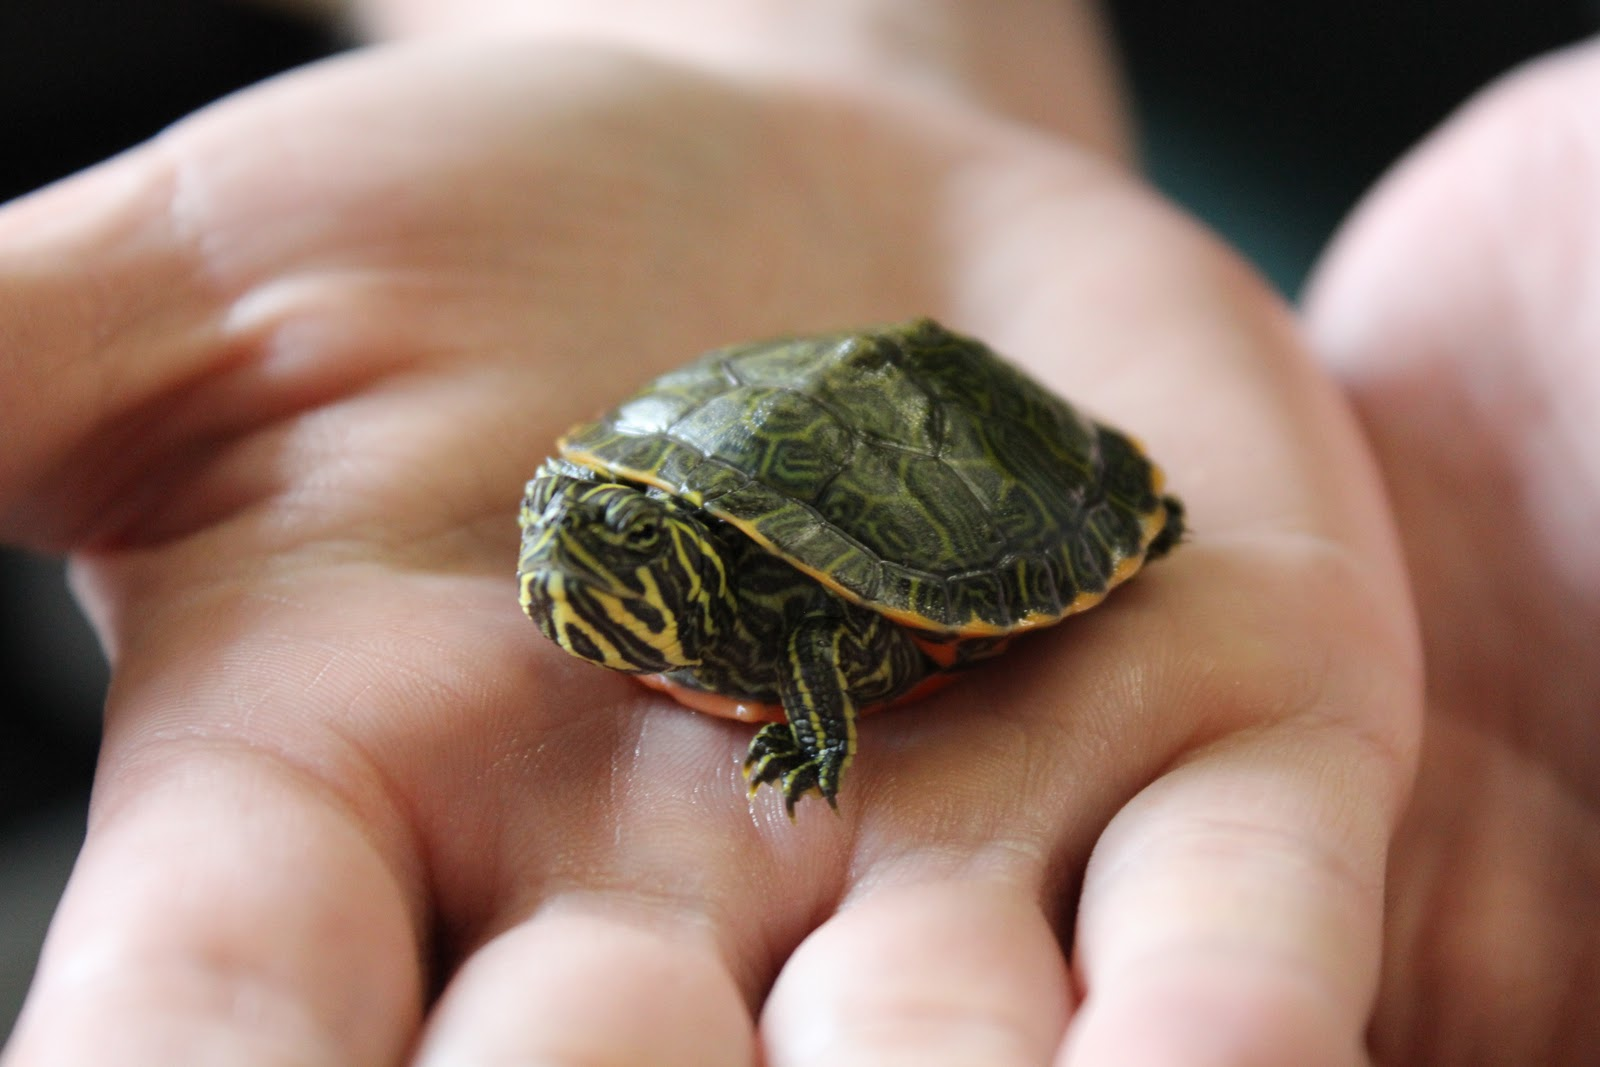 biologists that care for these turtles say they can tell the turtles ...